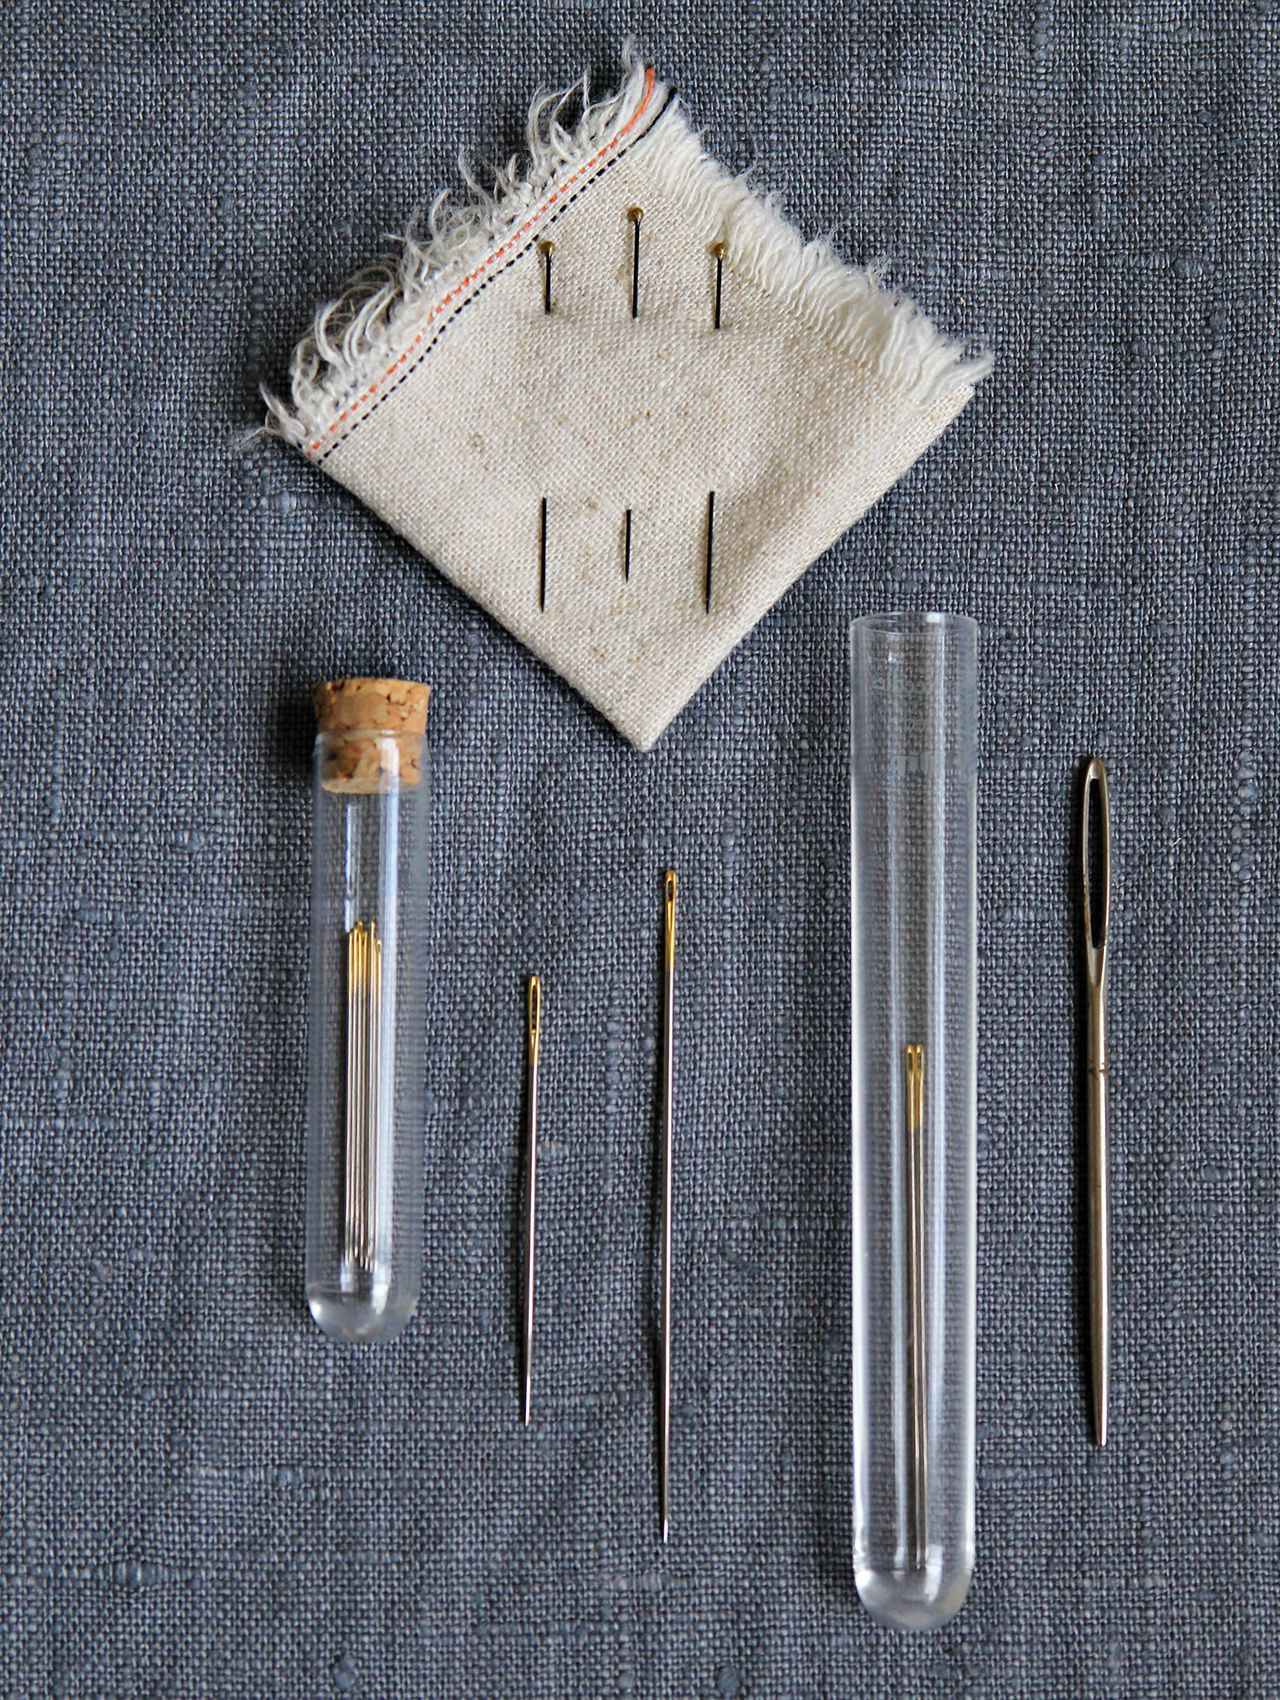 sewing-happiness-vintage-needles.jpg